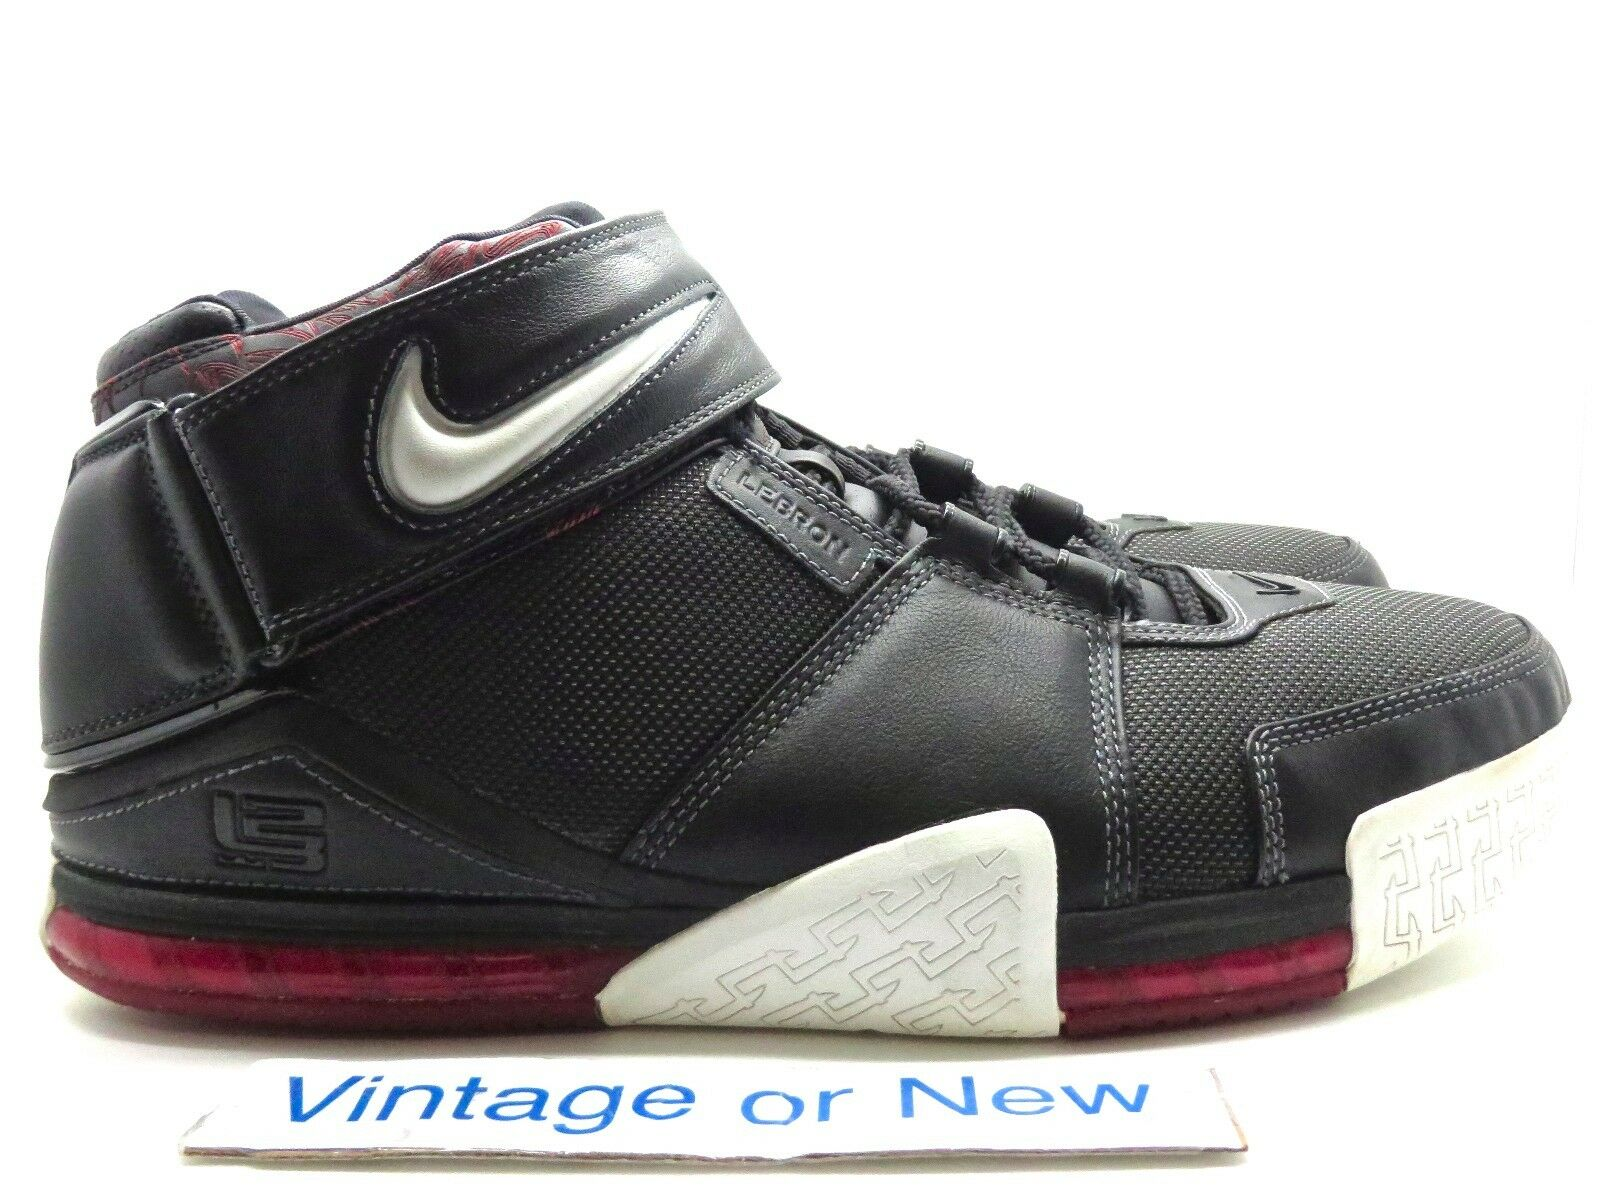 Nike Zoom LeBron II 2 Black White Metallic Silver Red 2004 sz 14